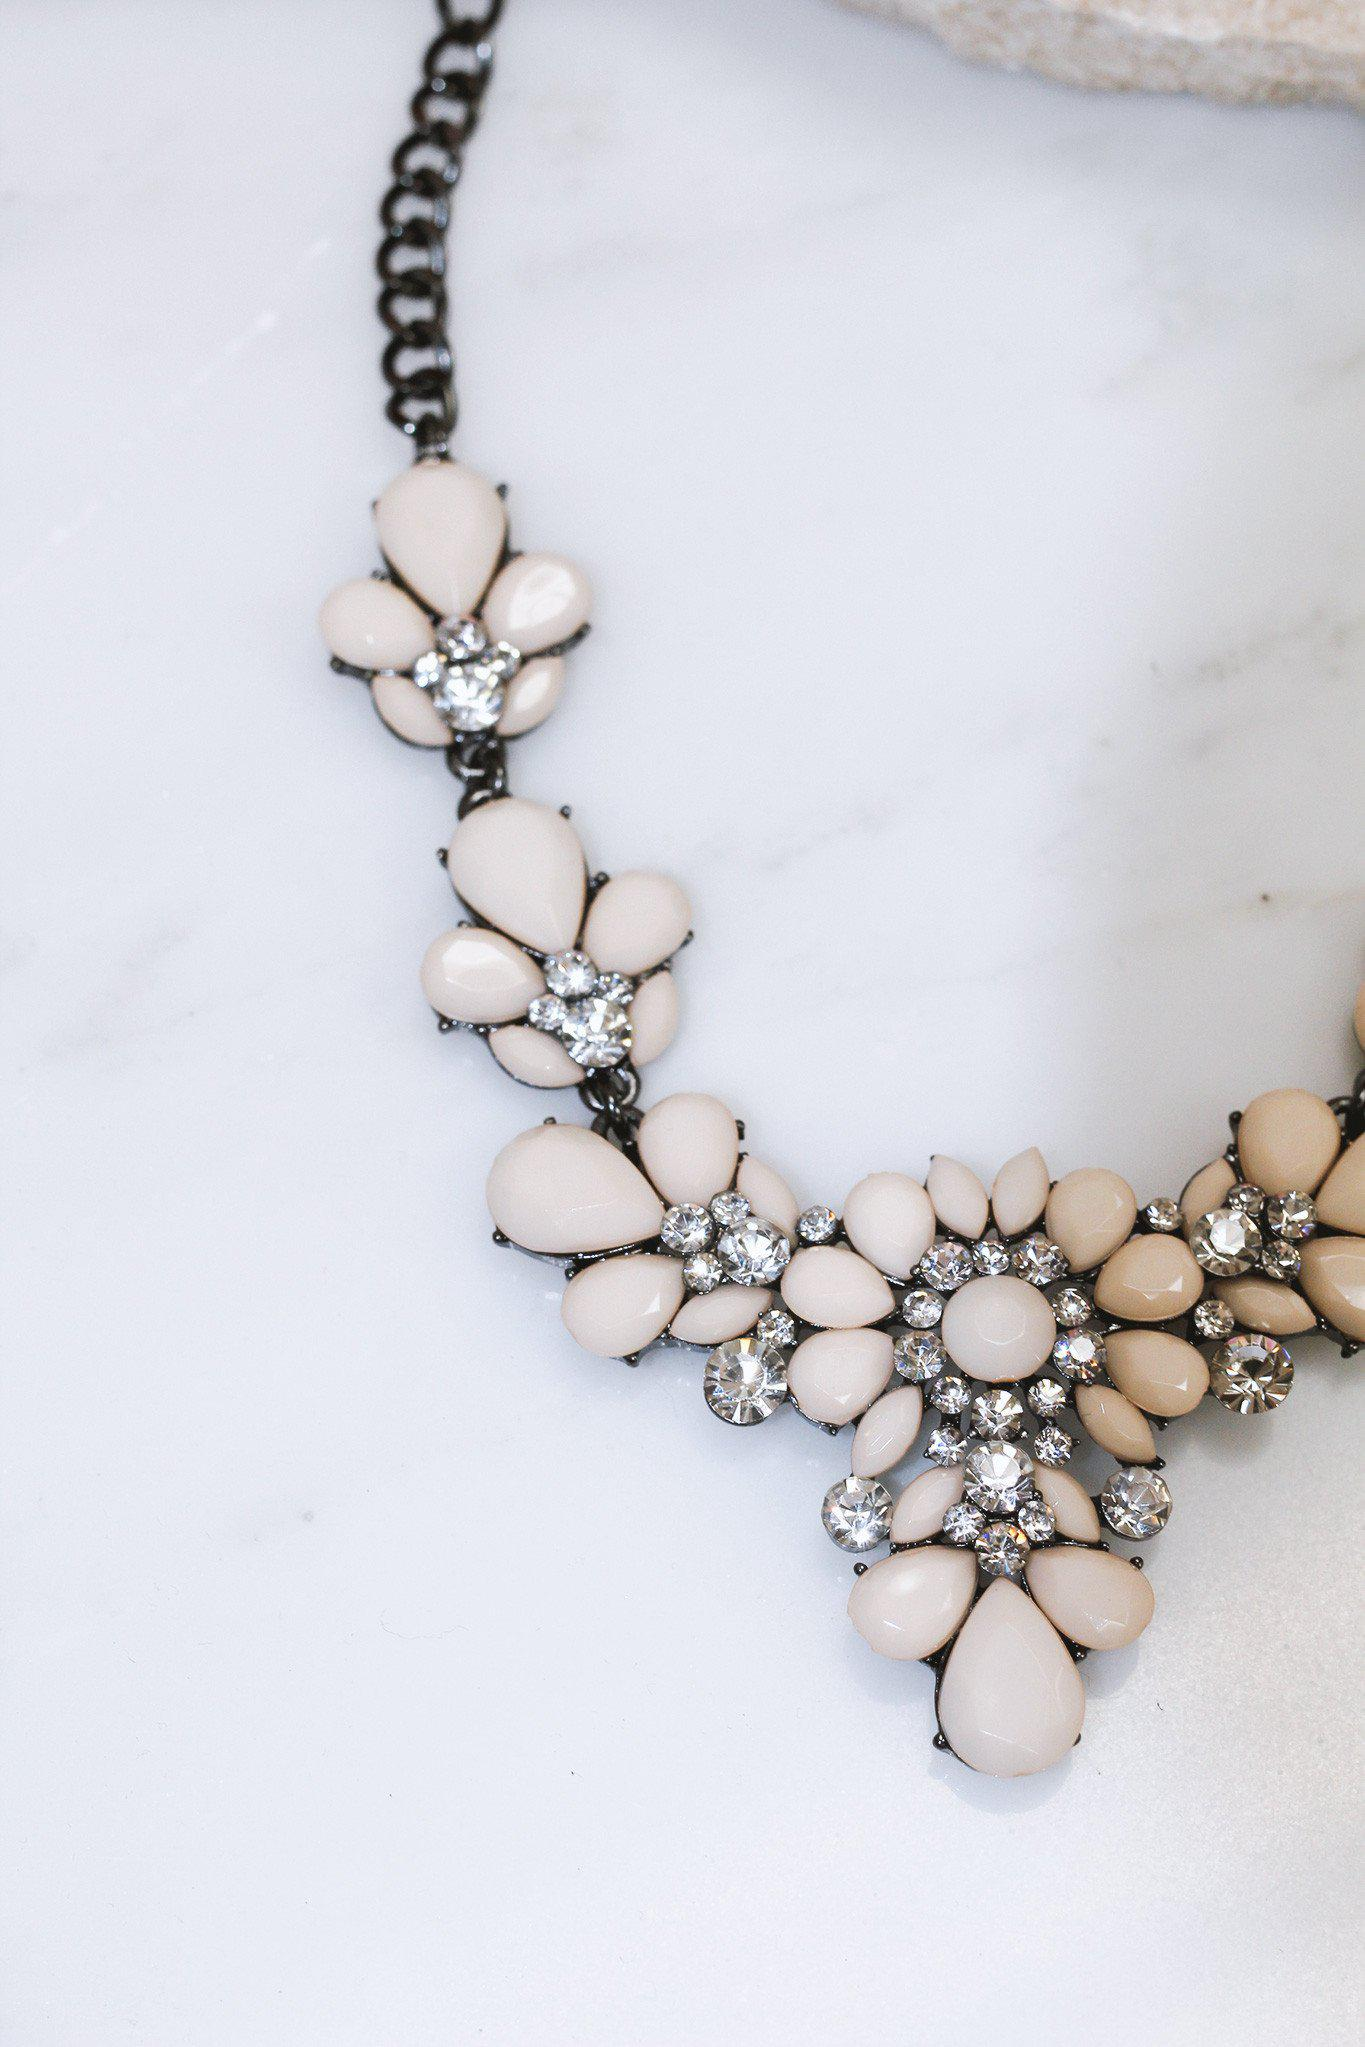 Natural Beaded Necklace with Crystal Design